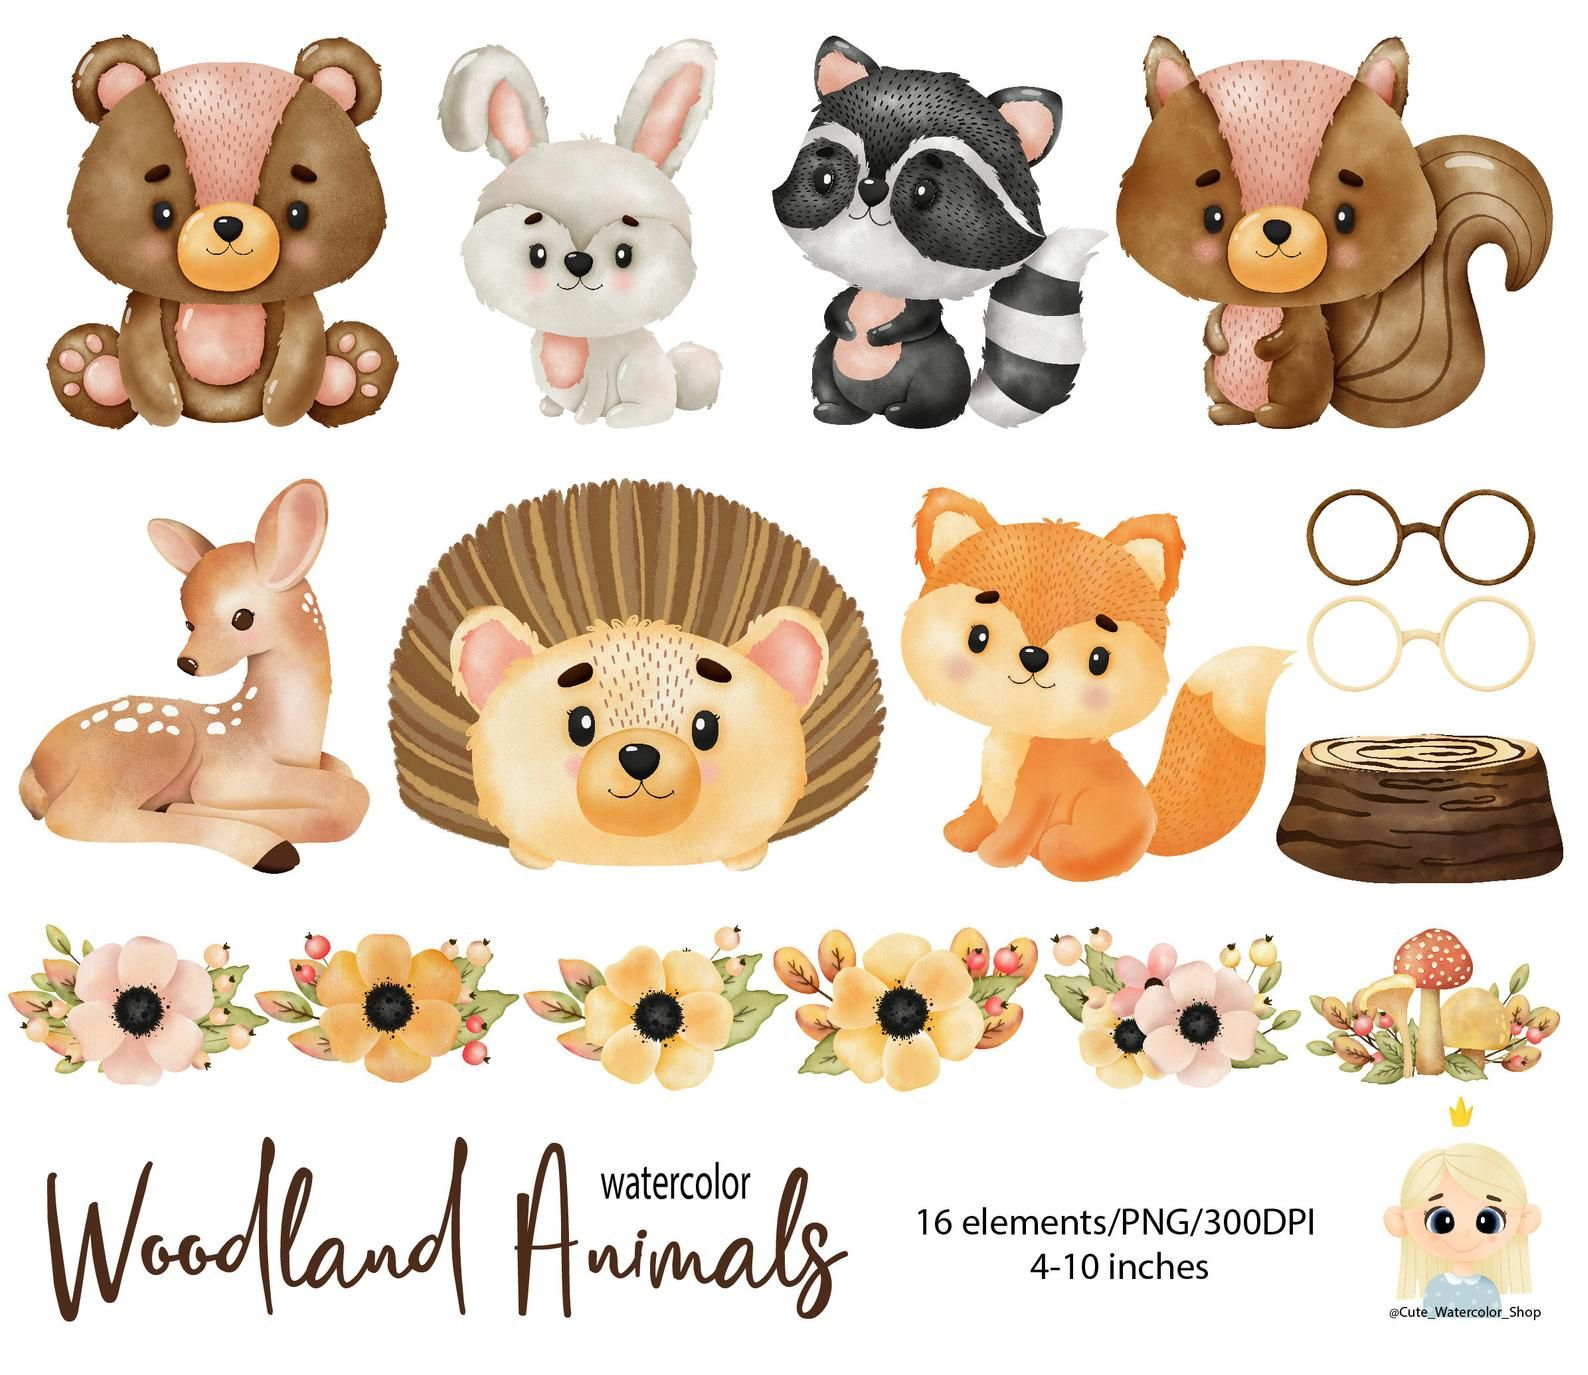 Forest Animal Watercolor Digital Clipart Woodland Creatures Etsy In 2021 Watercolor Animals Animal Clipart Woodland Animals